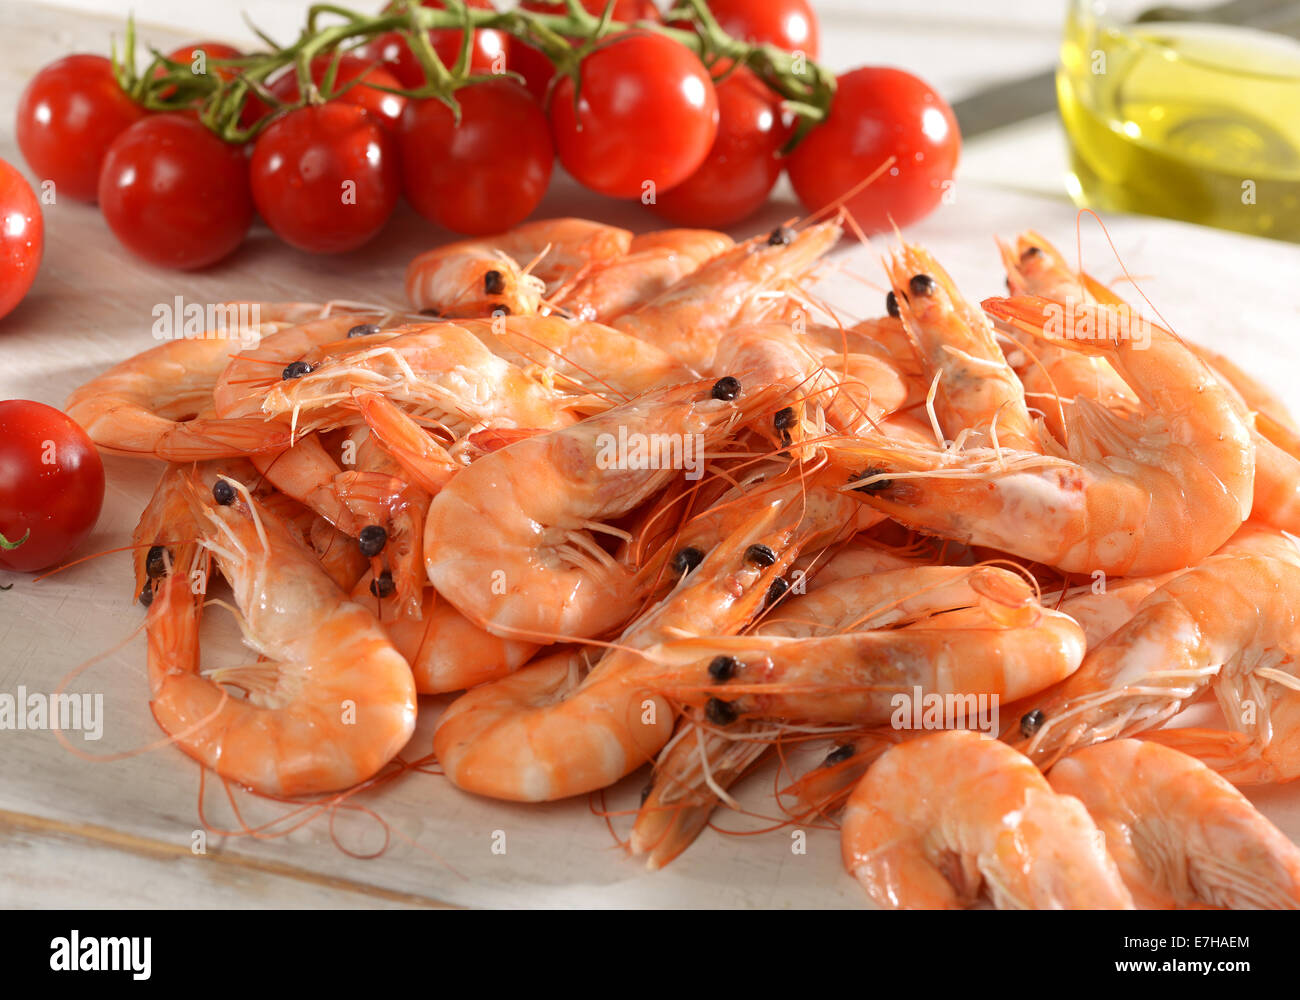 Heap of fresh raw pink marine prawns - Stock Image